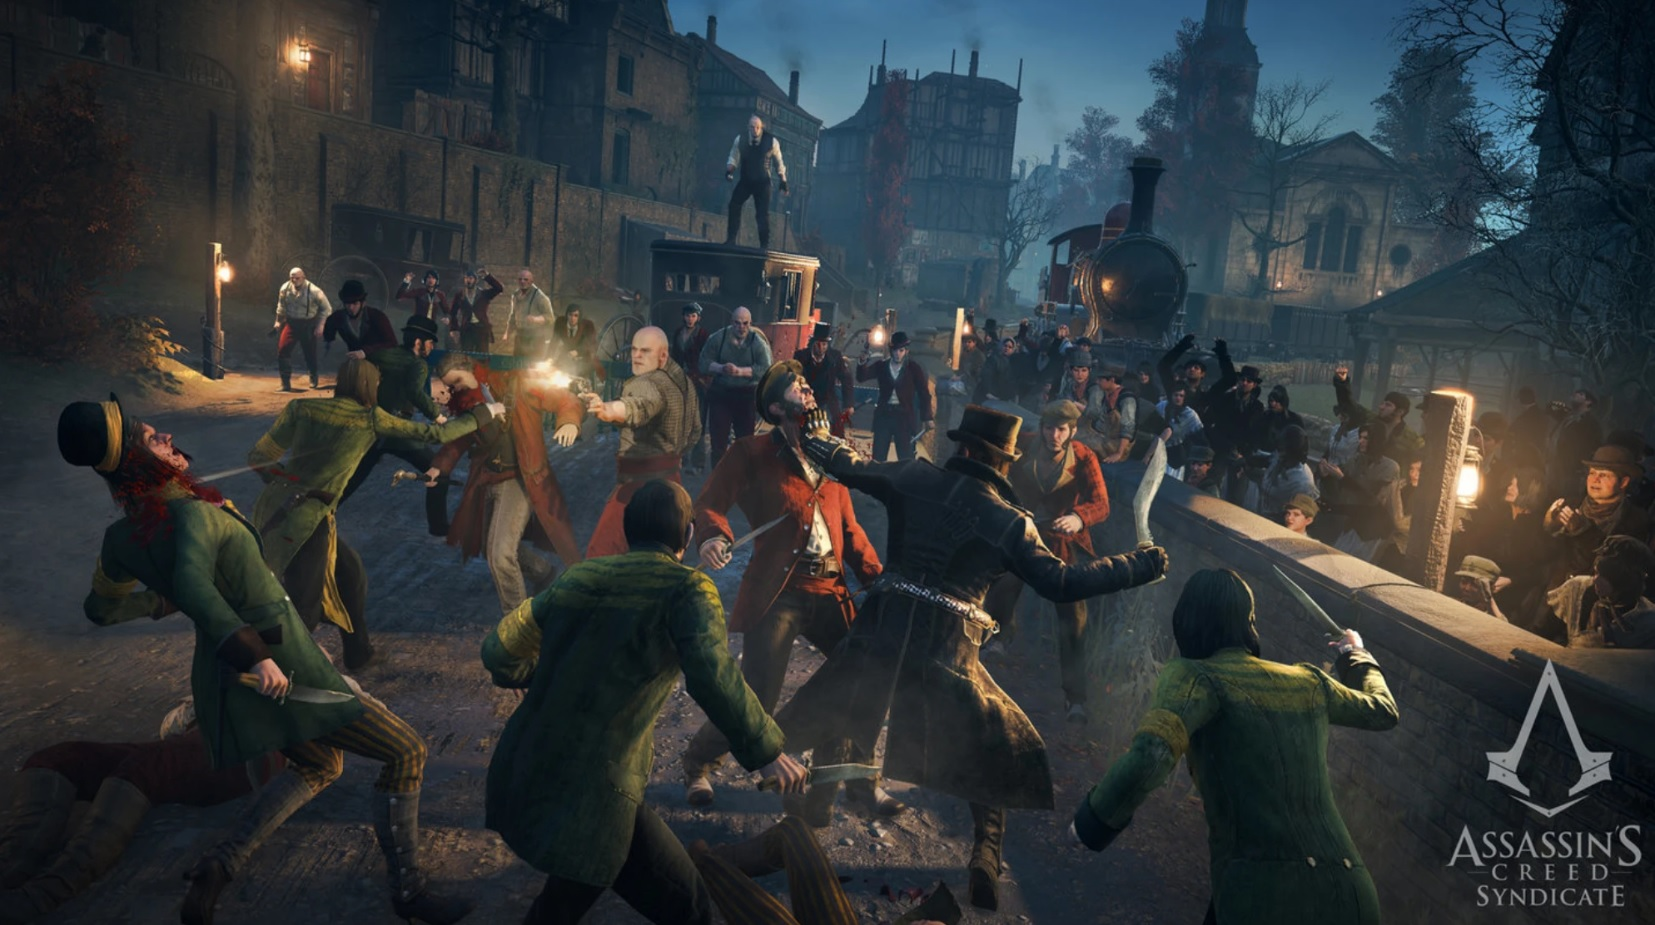 Creed Syndicate perfect difficulty, make it easy or hard emergent gameplay Ubisoft Assassin's Creed Syndicate